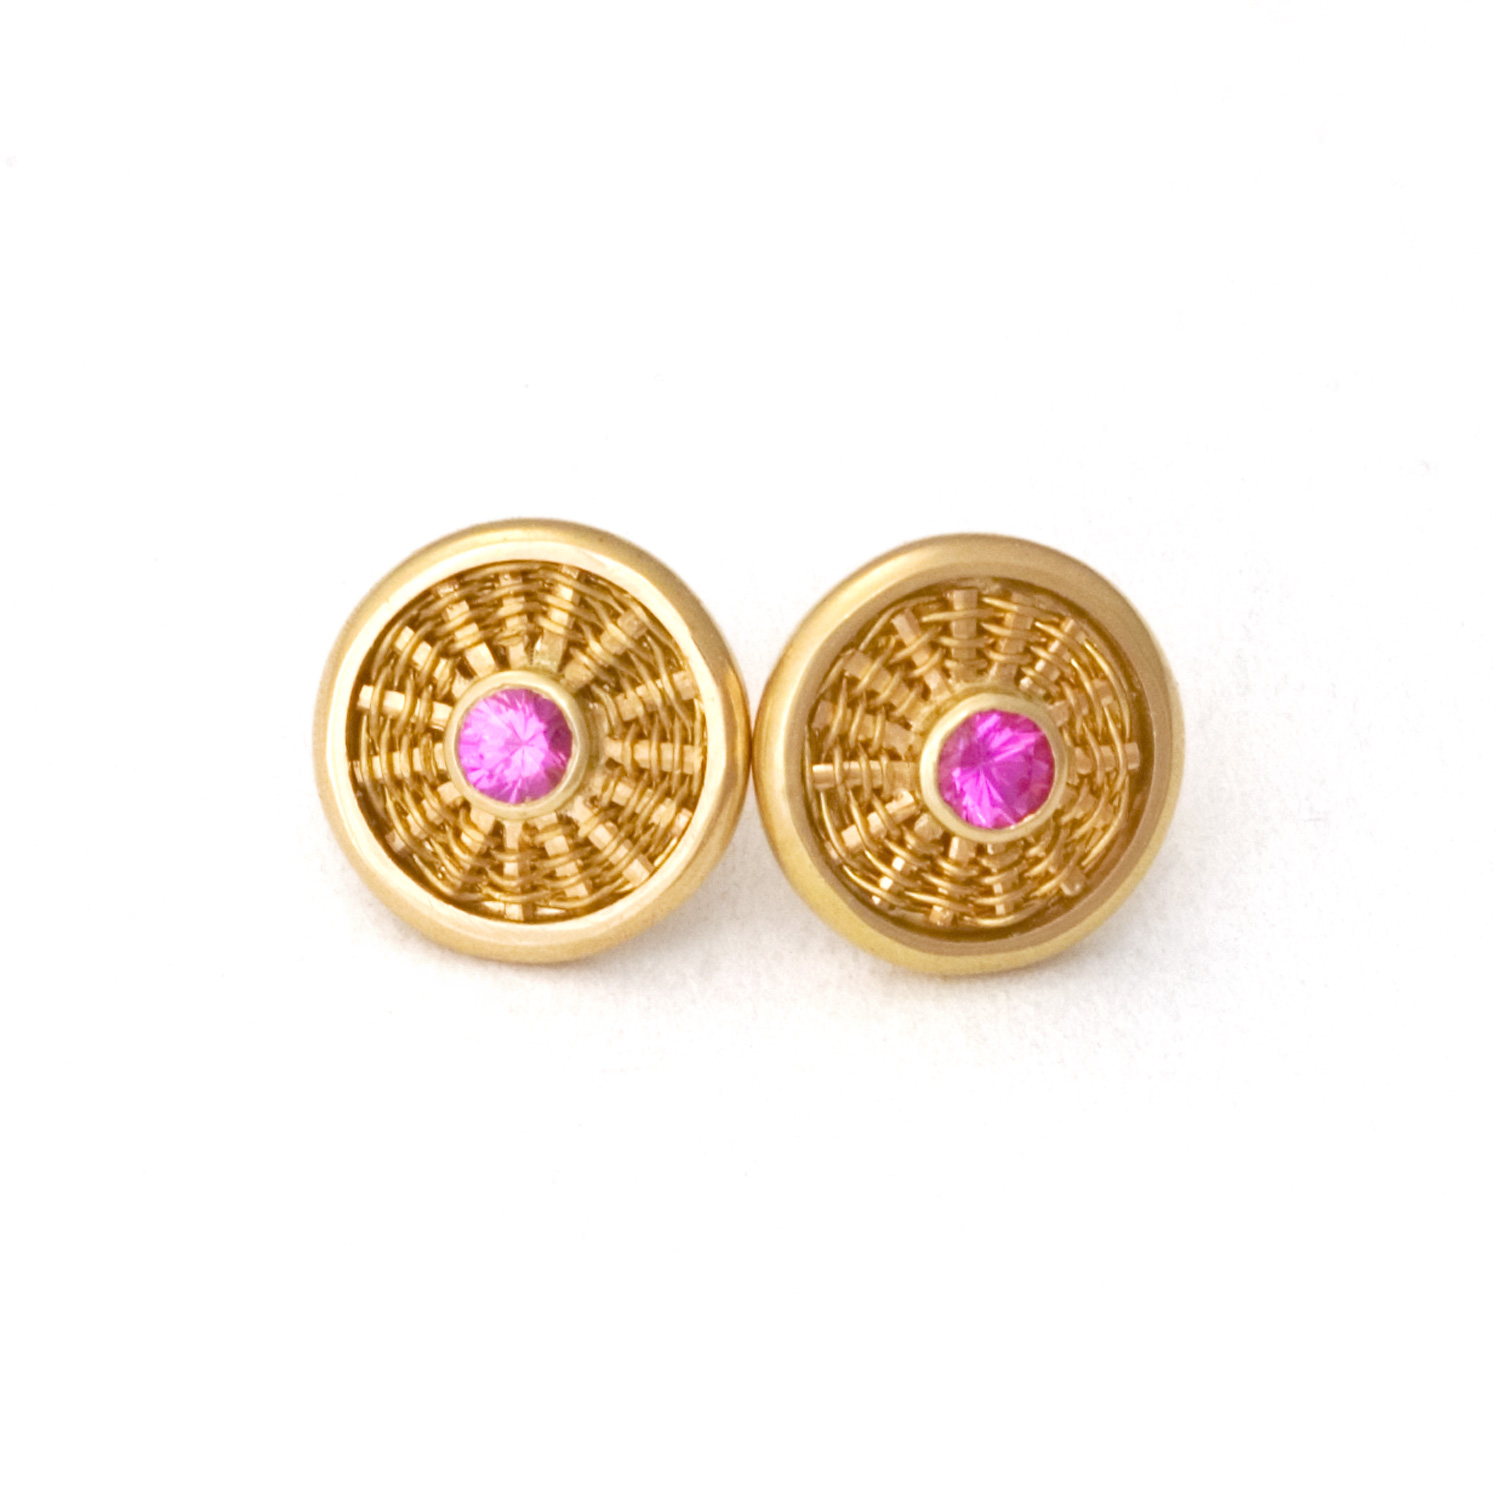 Sunburst Weave Stud Earrings in 18k & 22k gold with pink sapphires by Tamberlaine